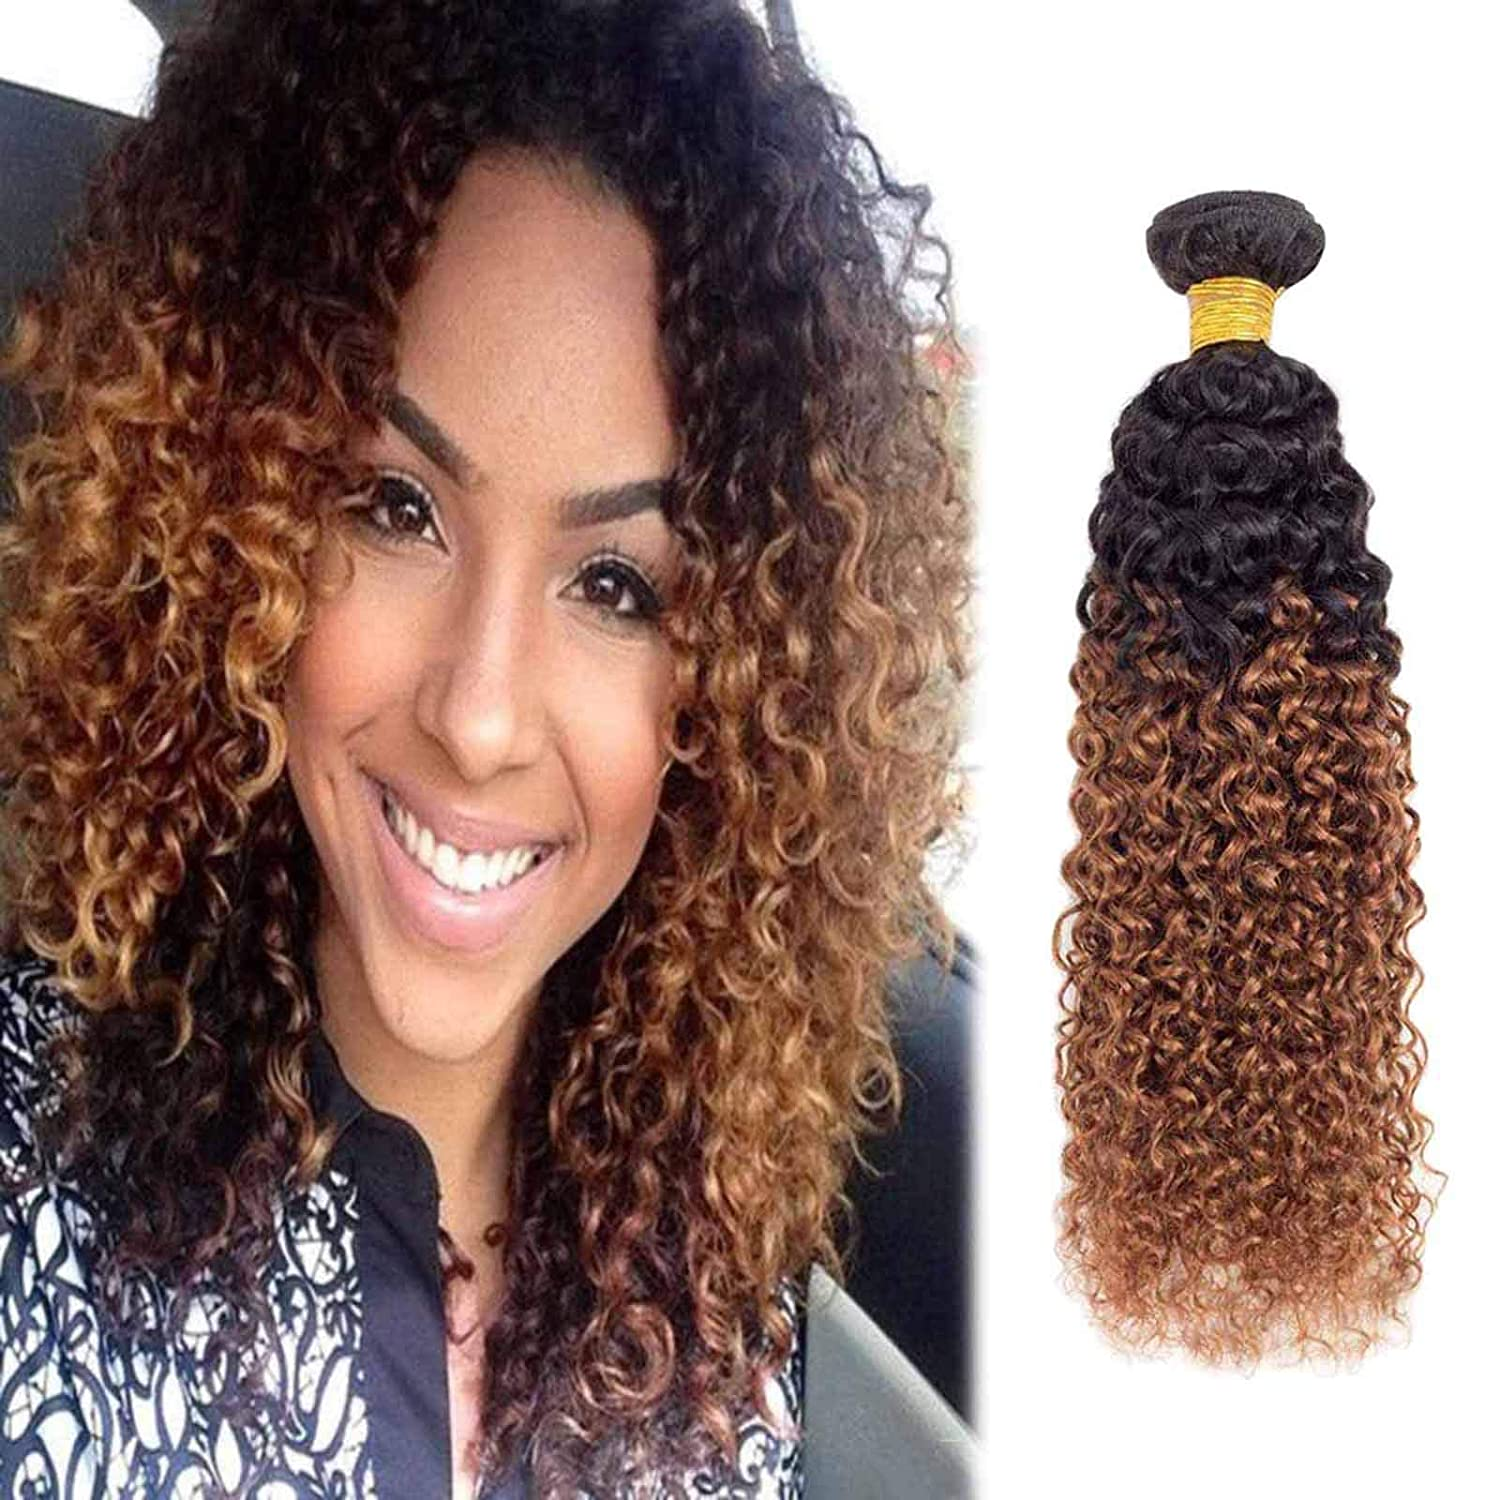 Adette 100% Brazilian Human Hair Bundles Max 77% OFF Brown J Rapid rise 16 Ombre Inches